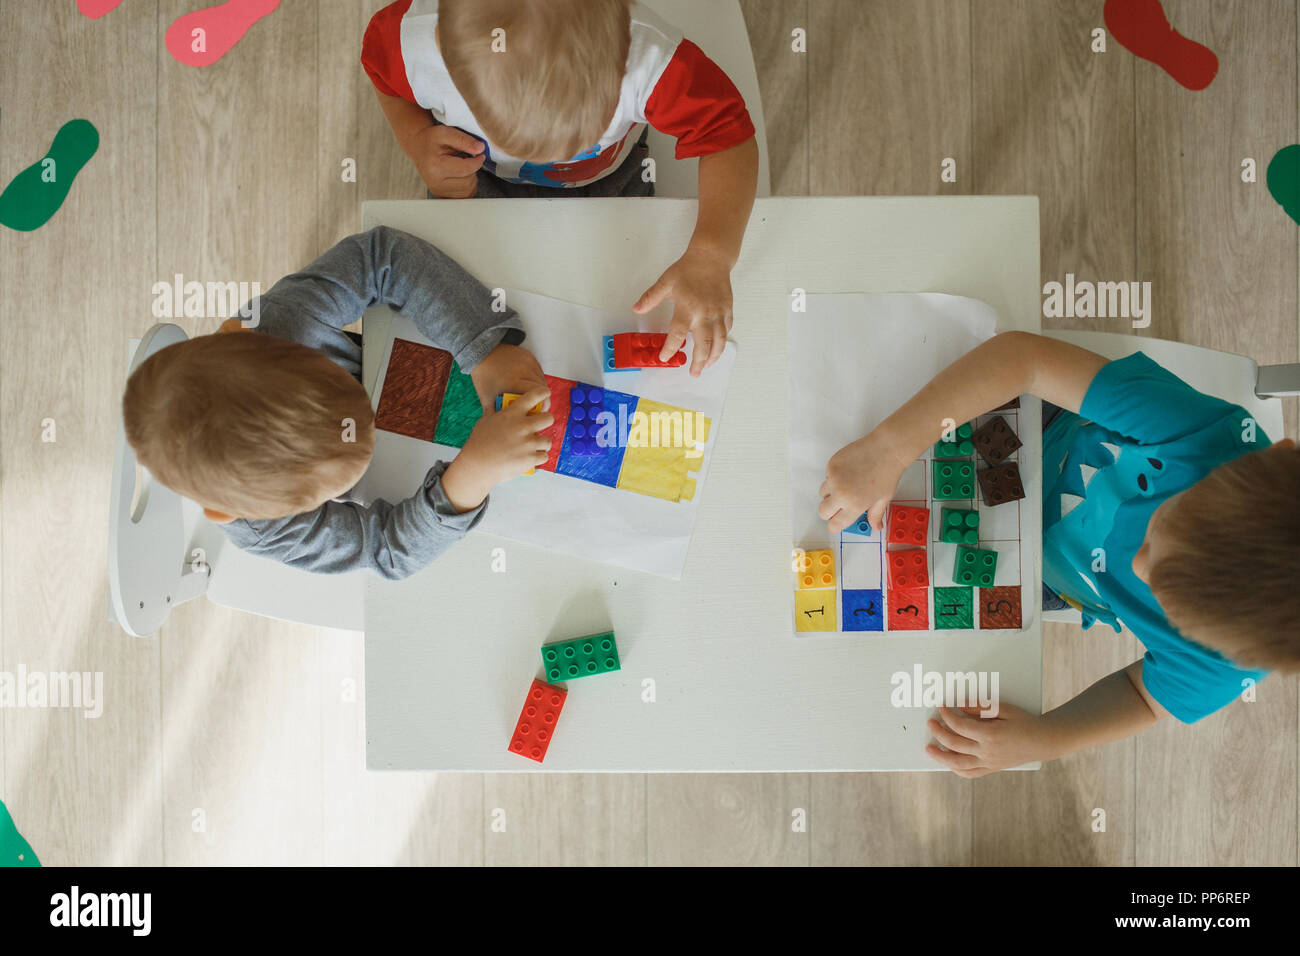 Children playing with blocks educational kit in the kindergarten. Top view picture. - Stock Image